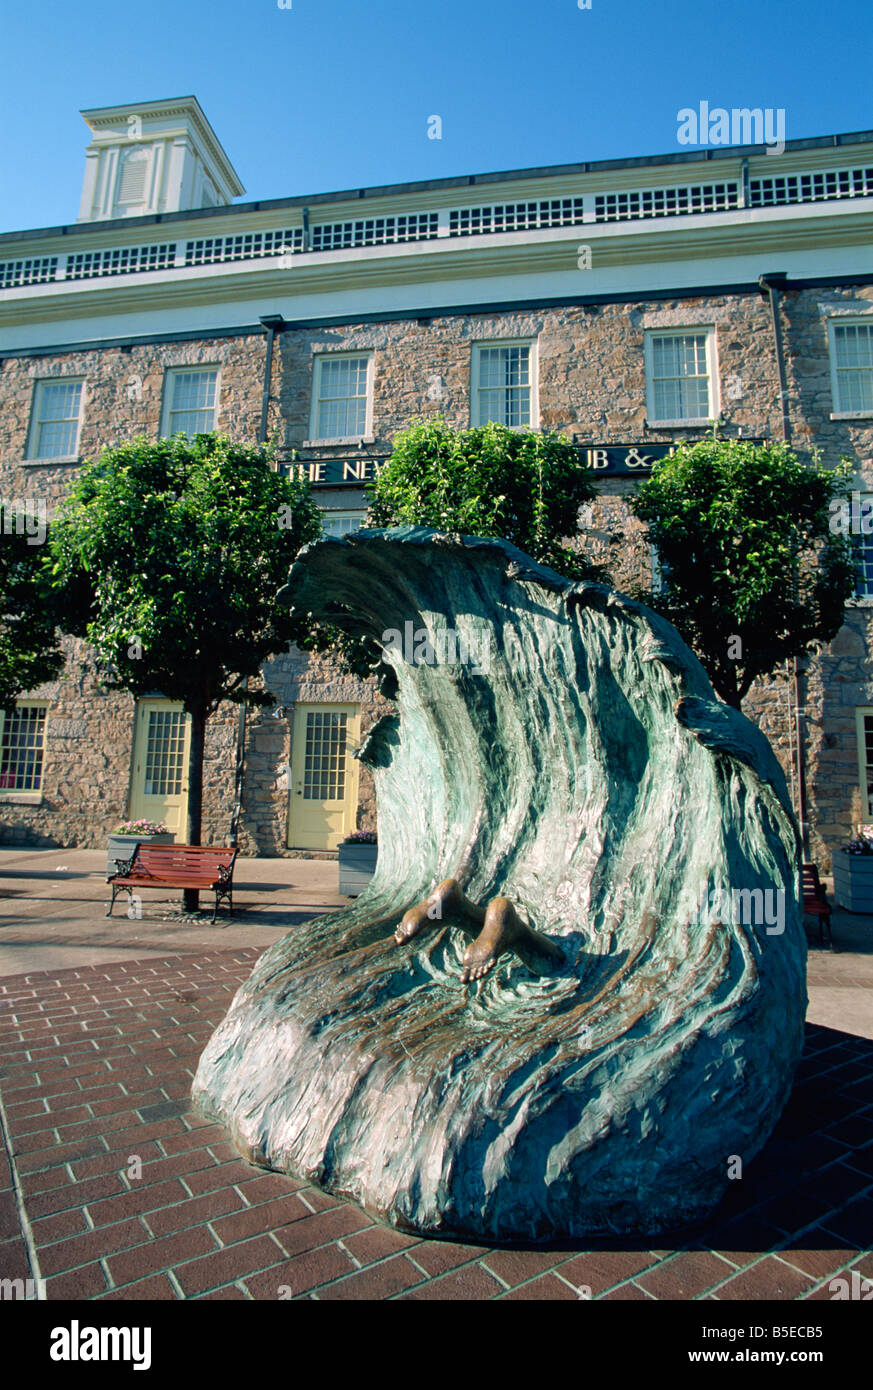 Sculpture depicting someone diving into a wave, Newport, Rhode Island, New England, USA, North America - Stock Image